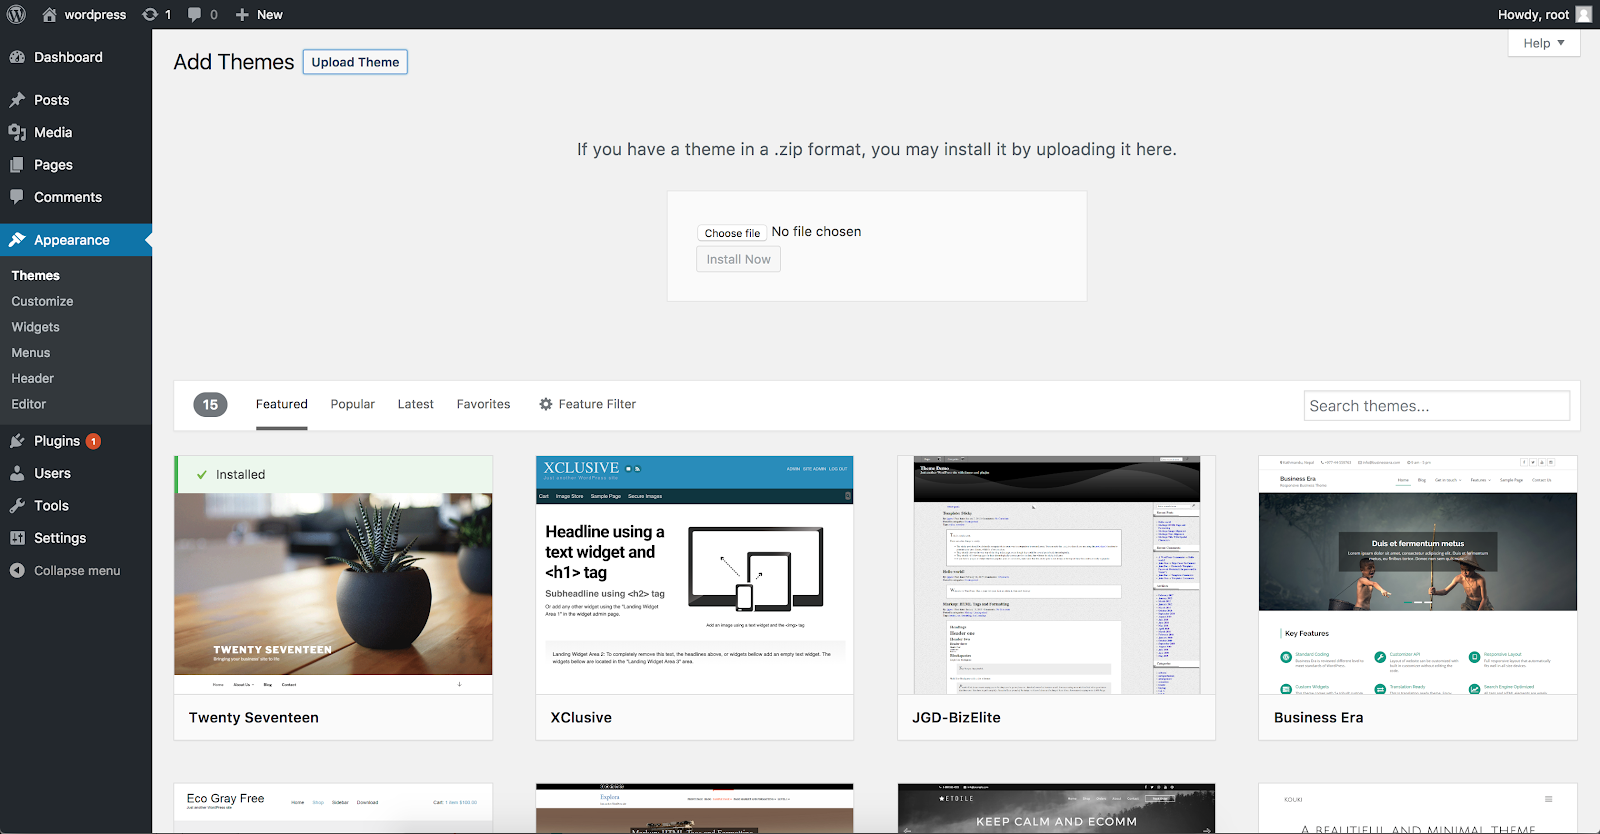 With WordPress, you can browse thousands of free themes directly in your dashboard